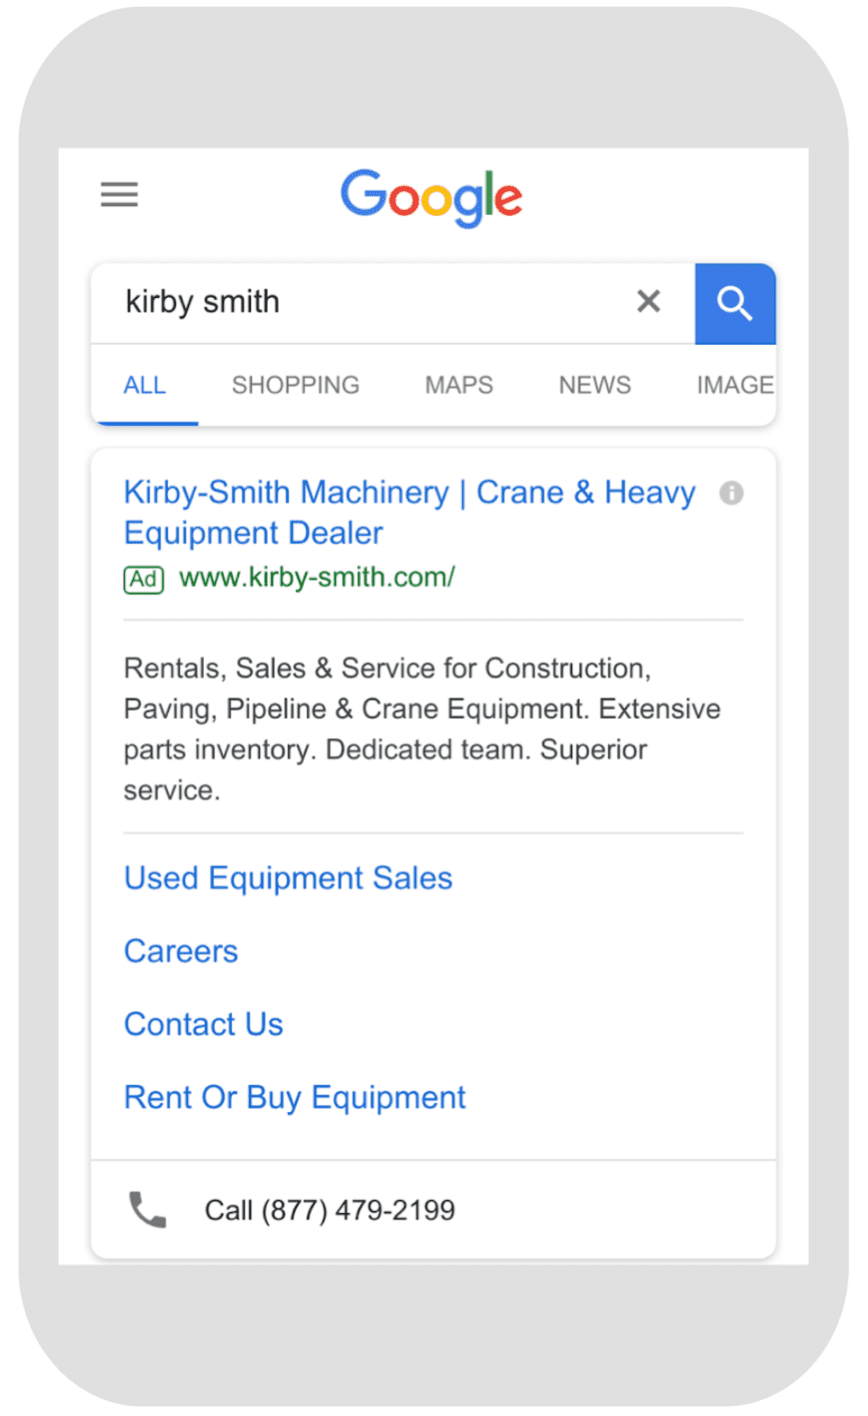 centertable-kirby-smith-machinery-search-marketing-campaign-google